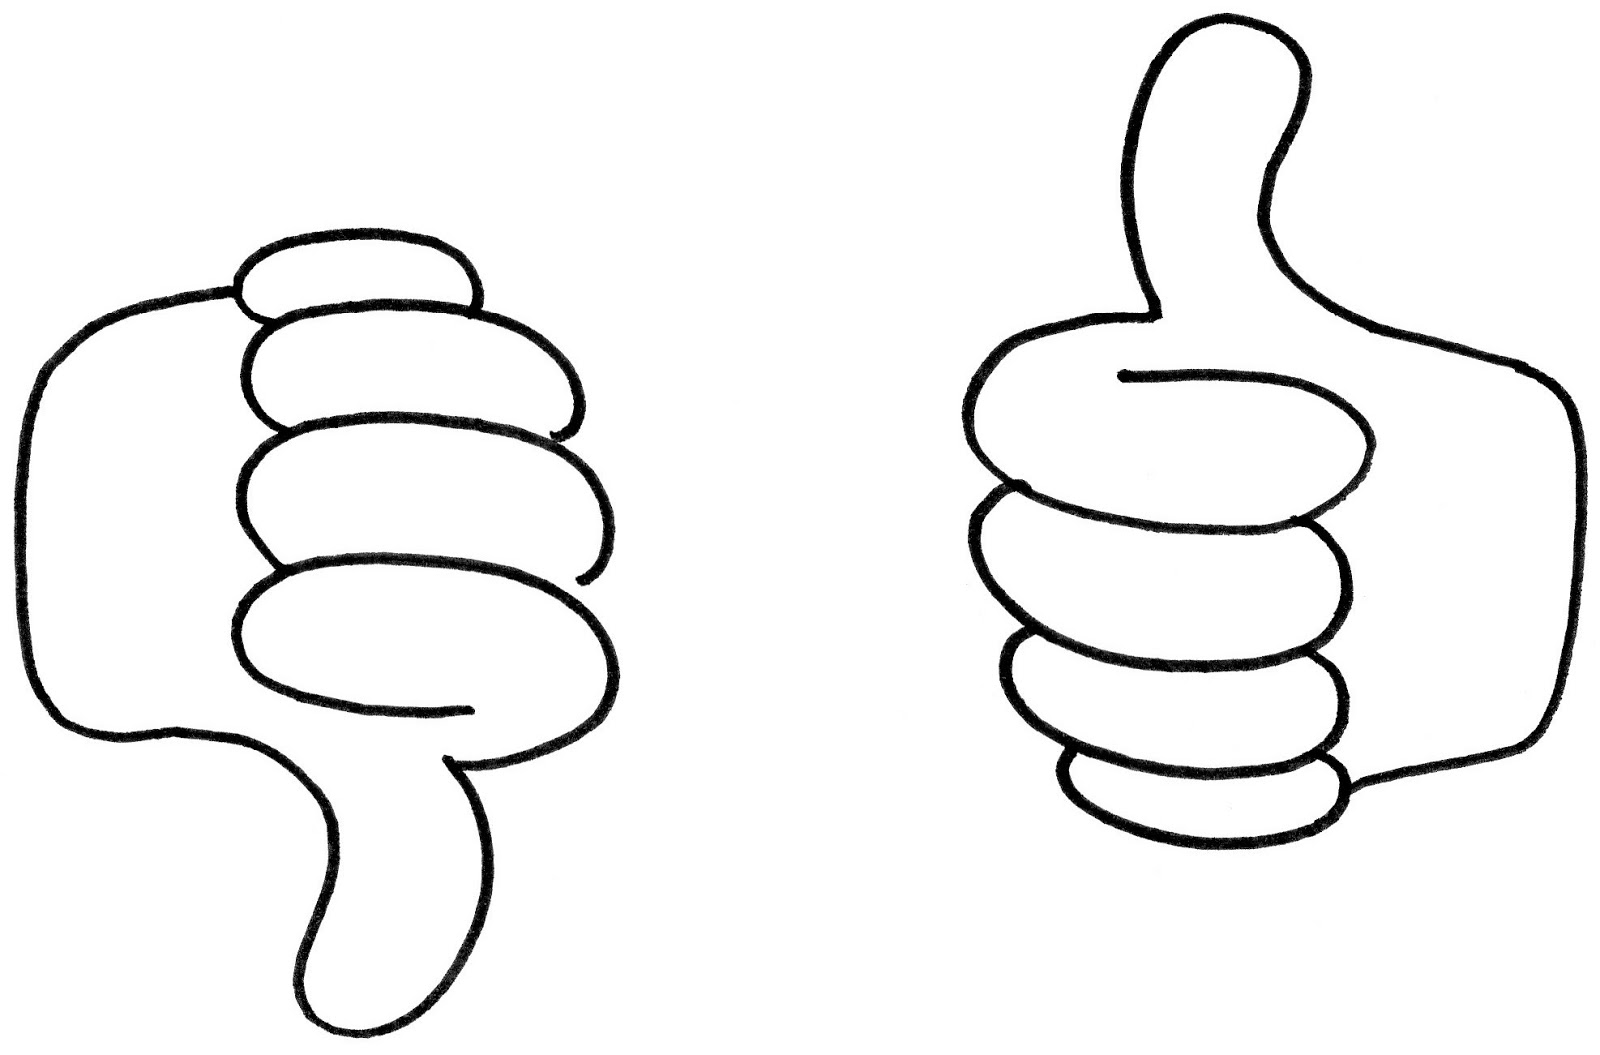 Clipart thumbs up and down graphic free download Thumbs up down clipart - ClipartFest graphic free download